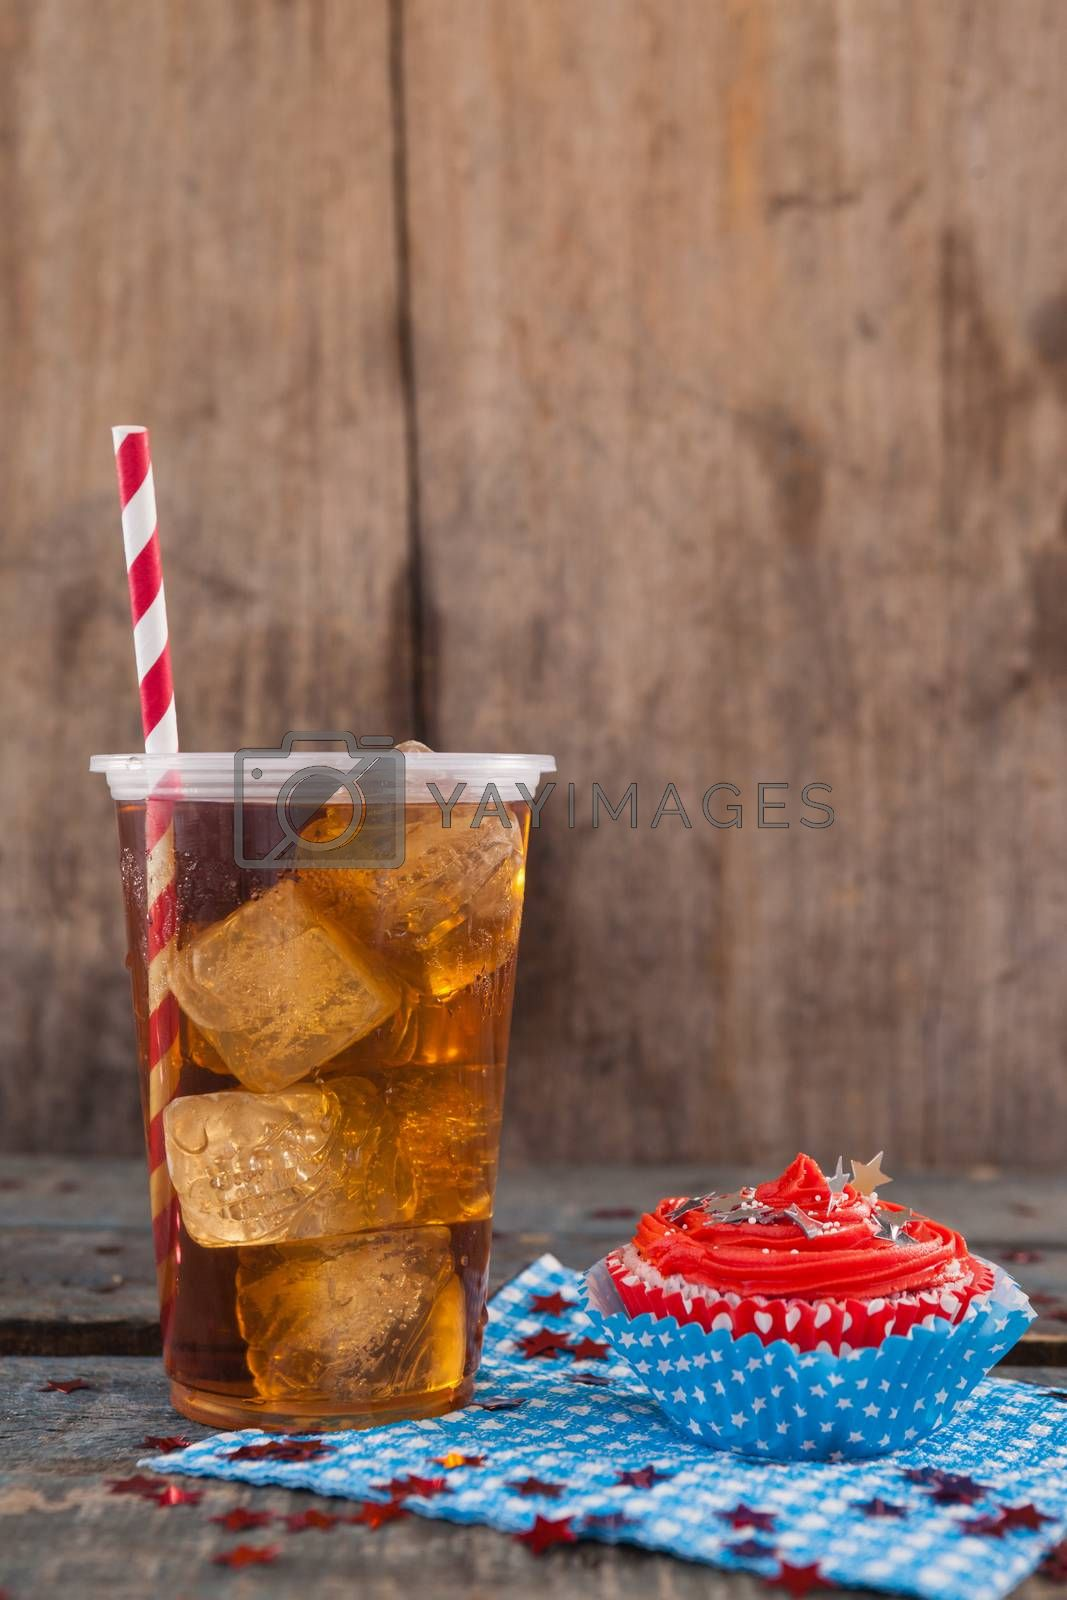 Decorated cupcake and cold drink with 4th july theme by Wavebreakmedia